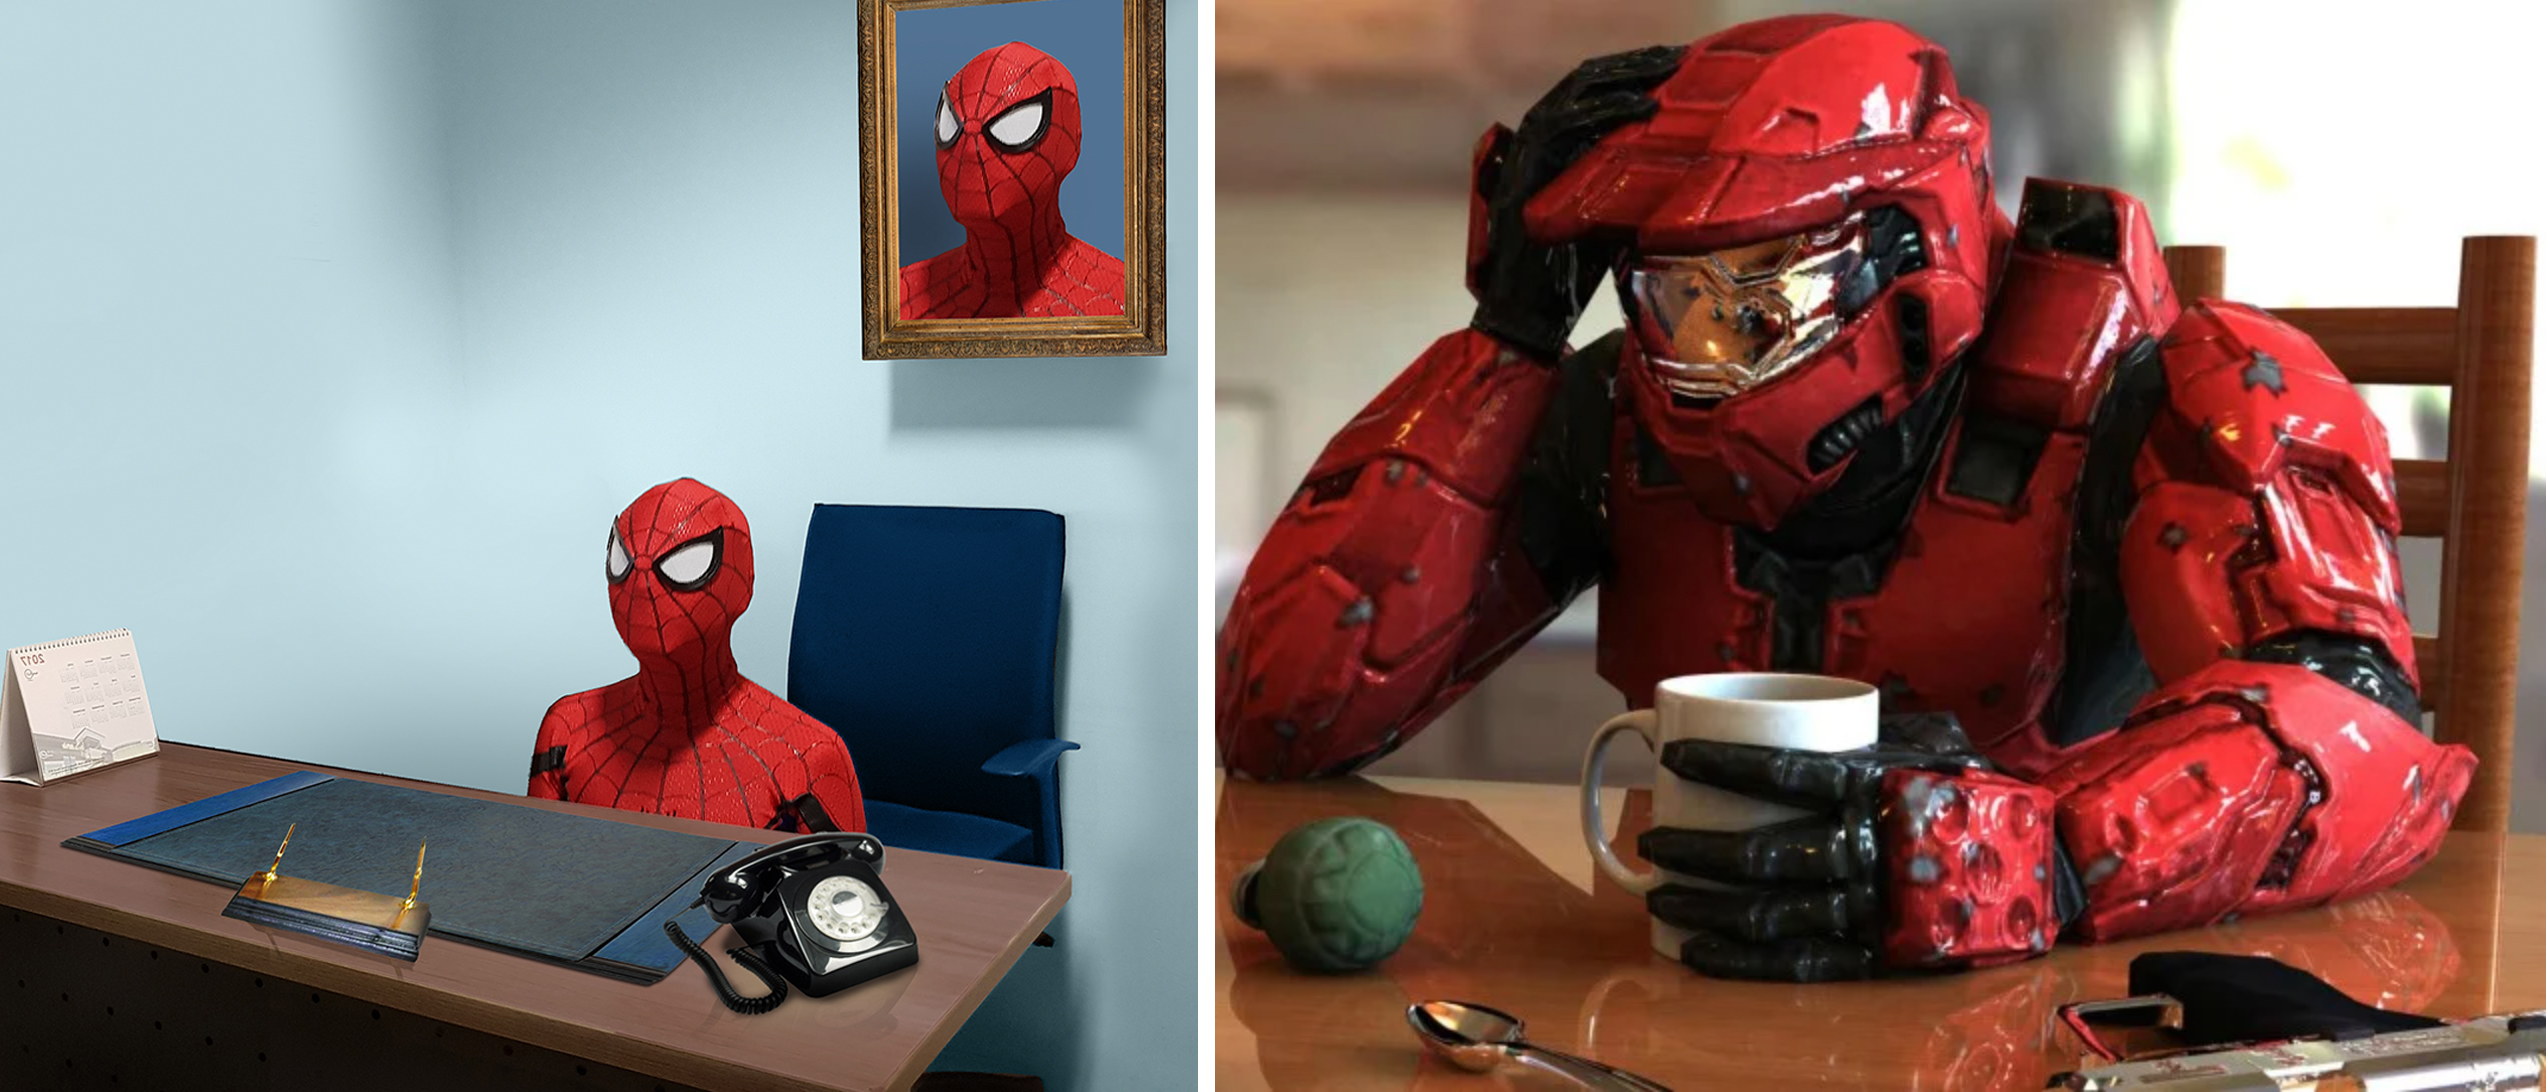 spider-man sitting behind a desk meme - halo master chief red suit sitting at table